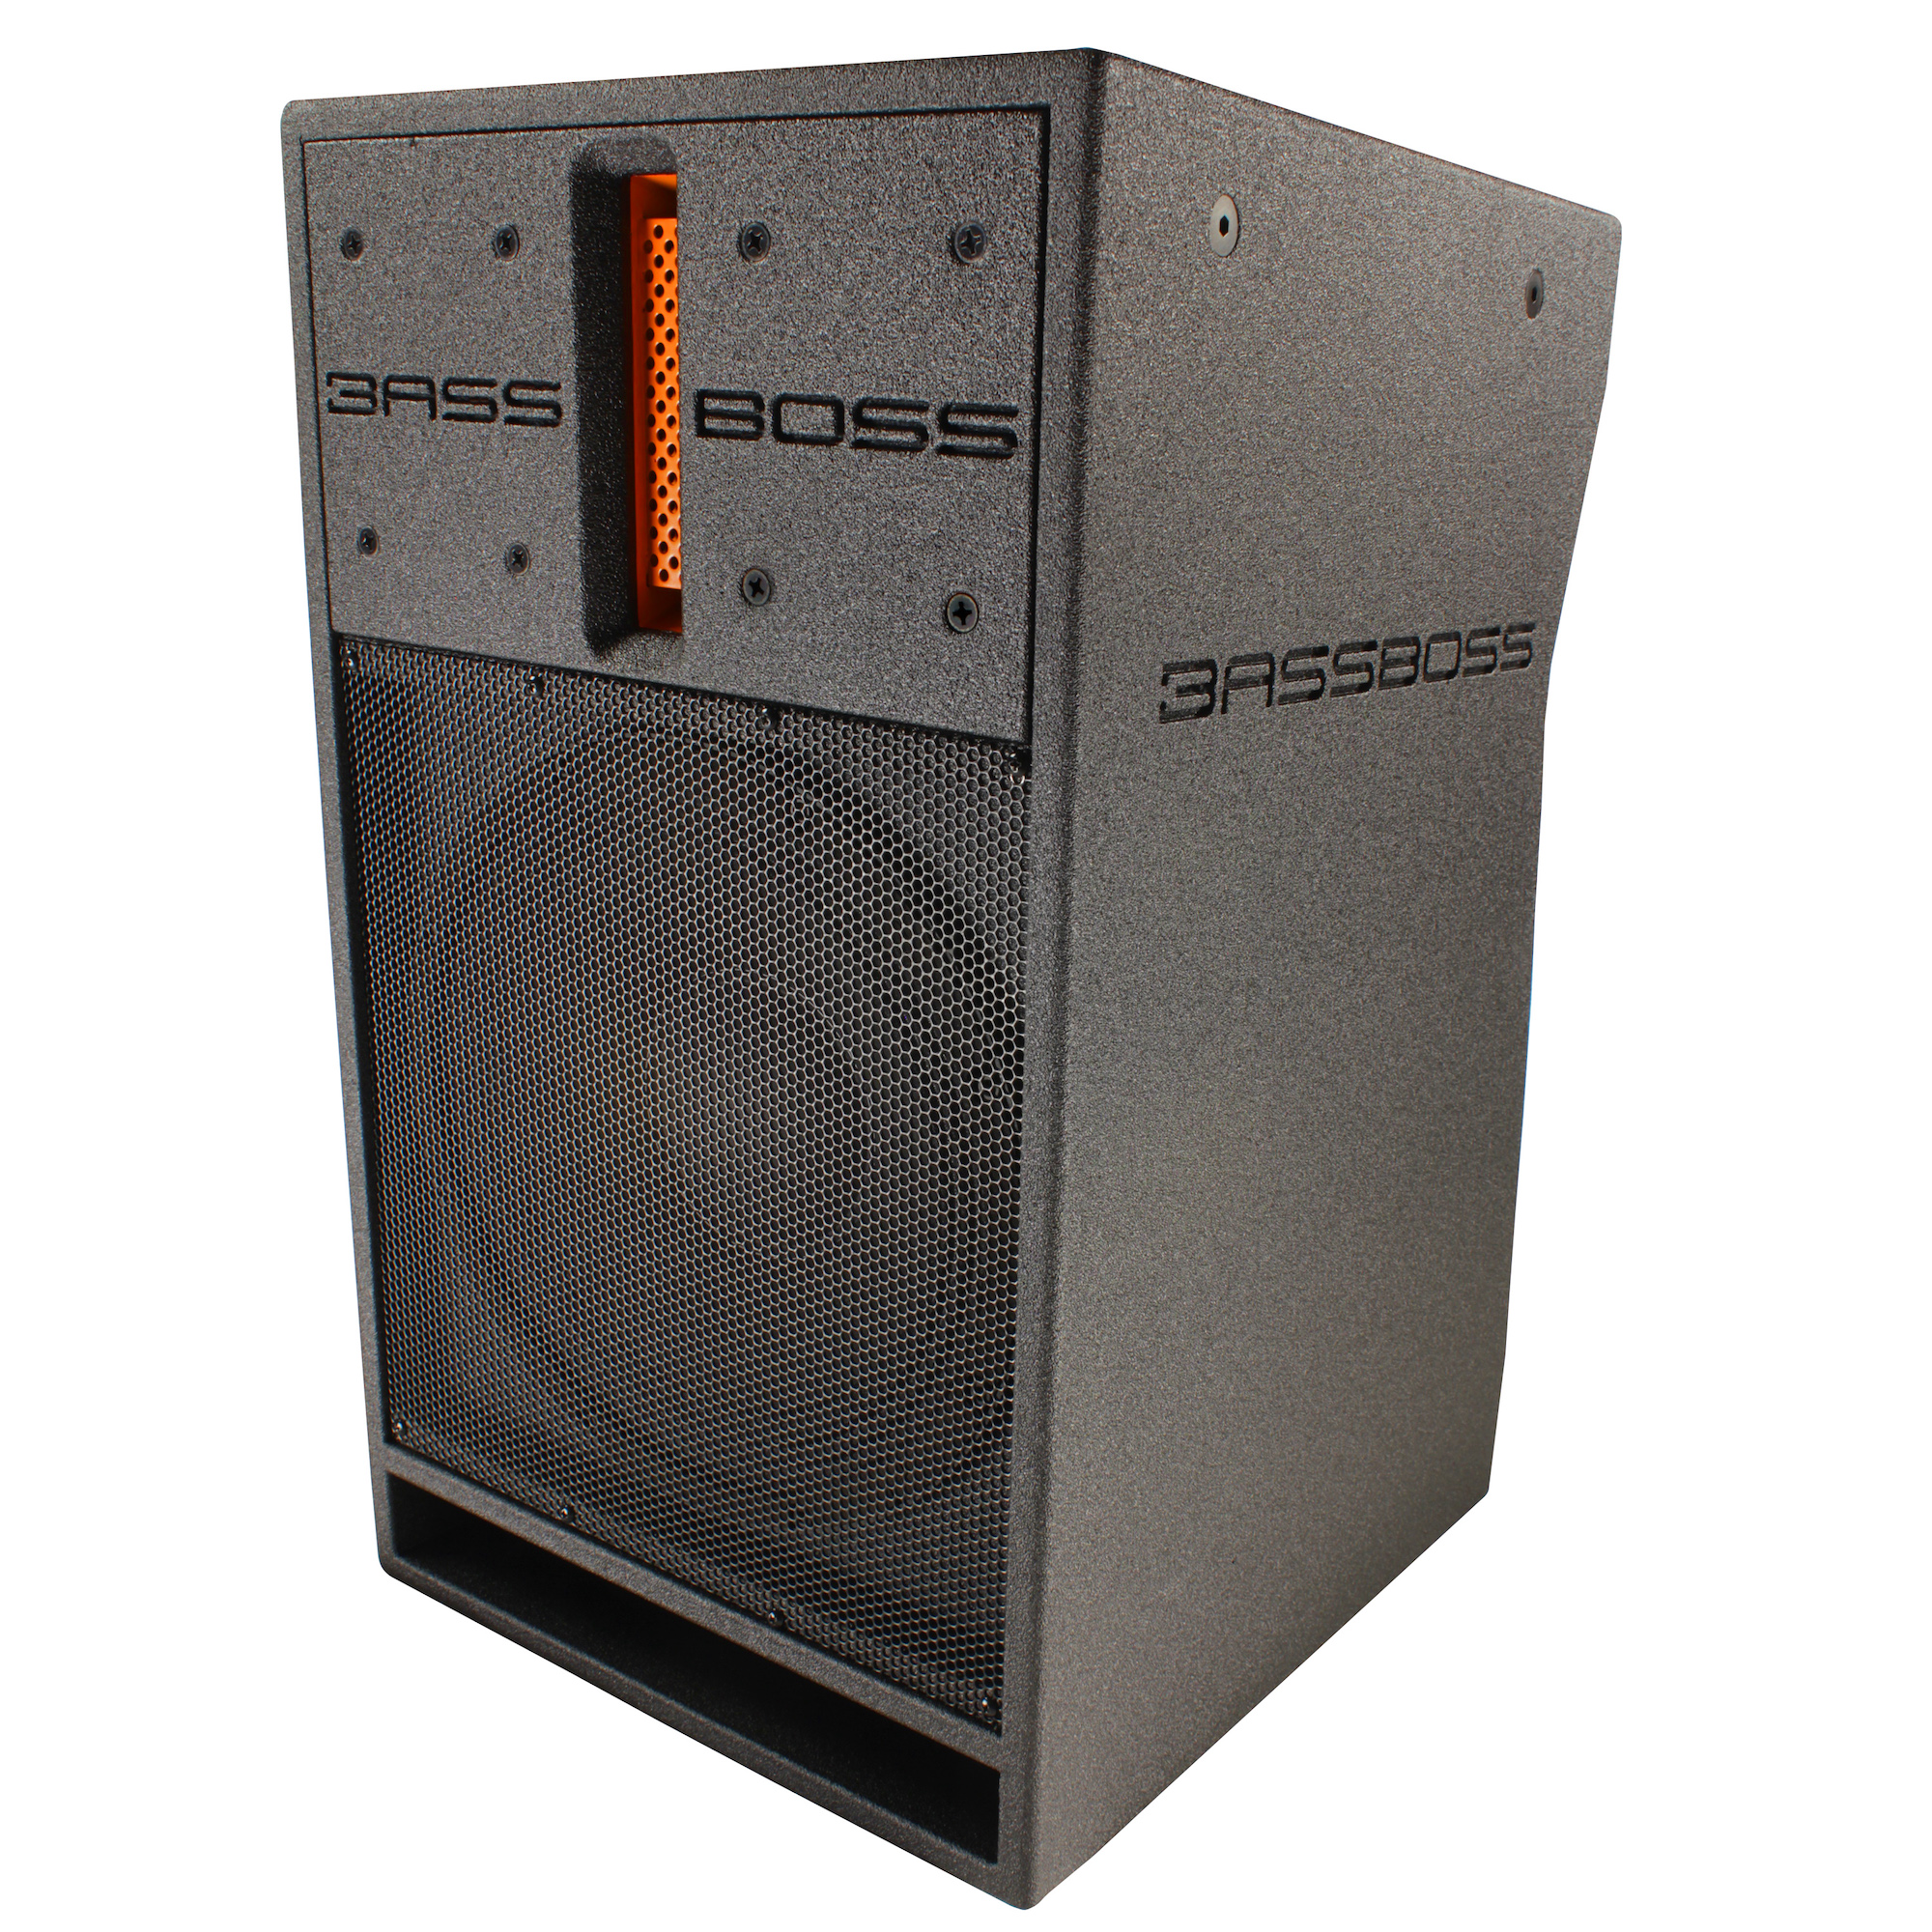 Powered loudspeaker manufacturer BASSBOSS (Booth #431) will